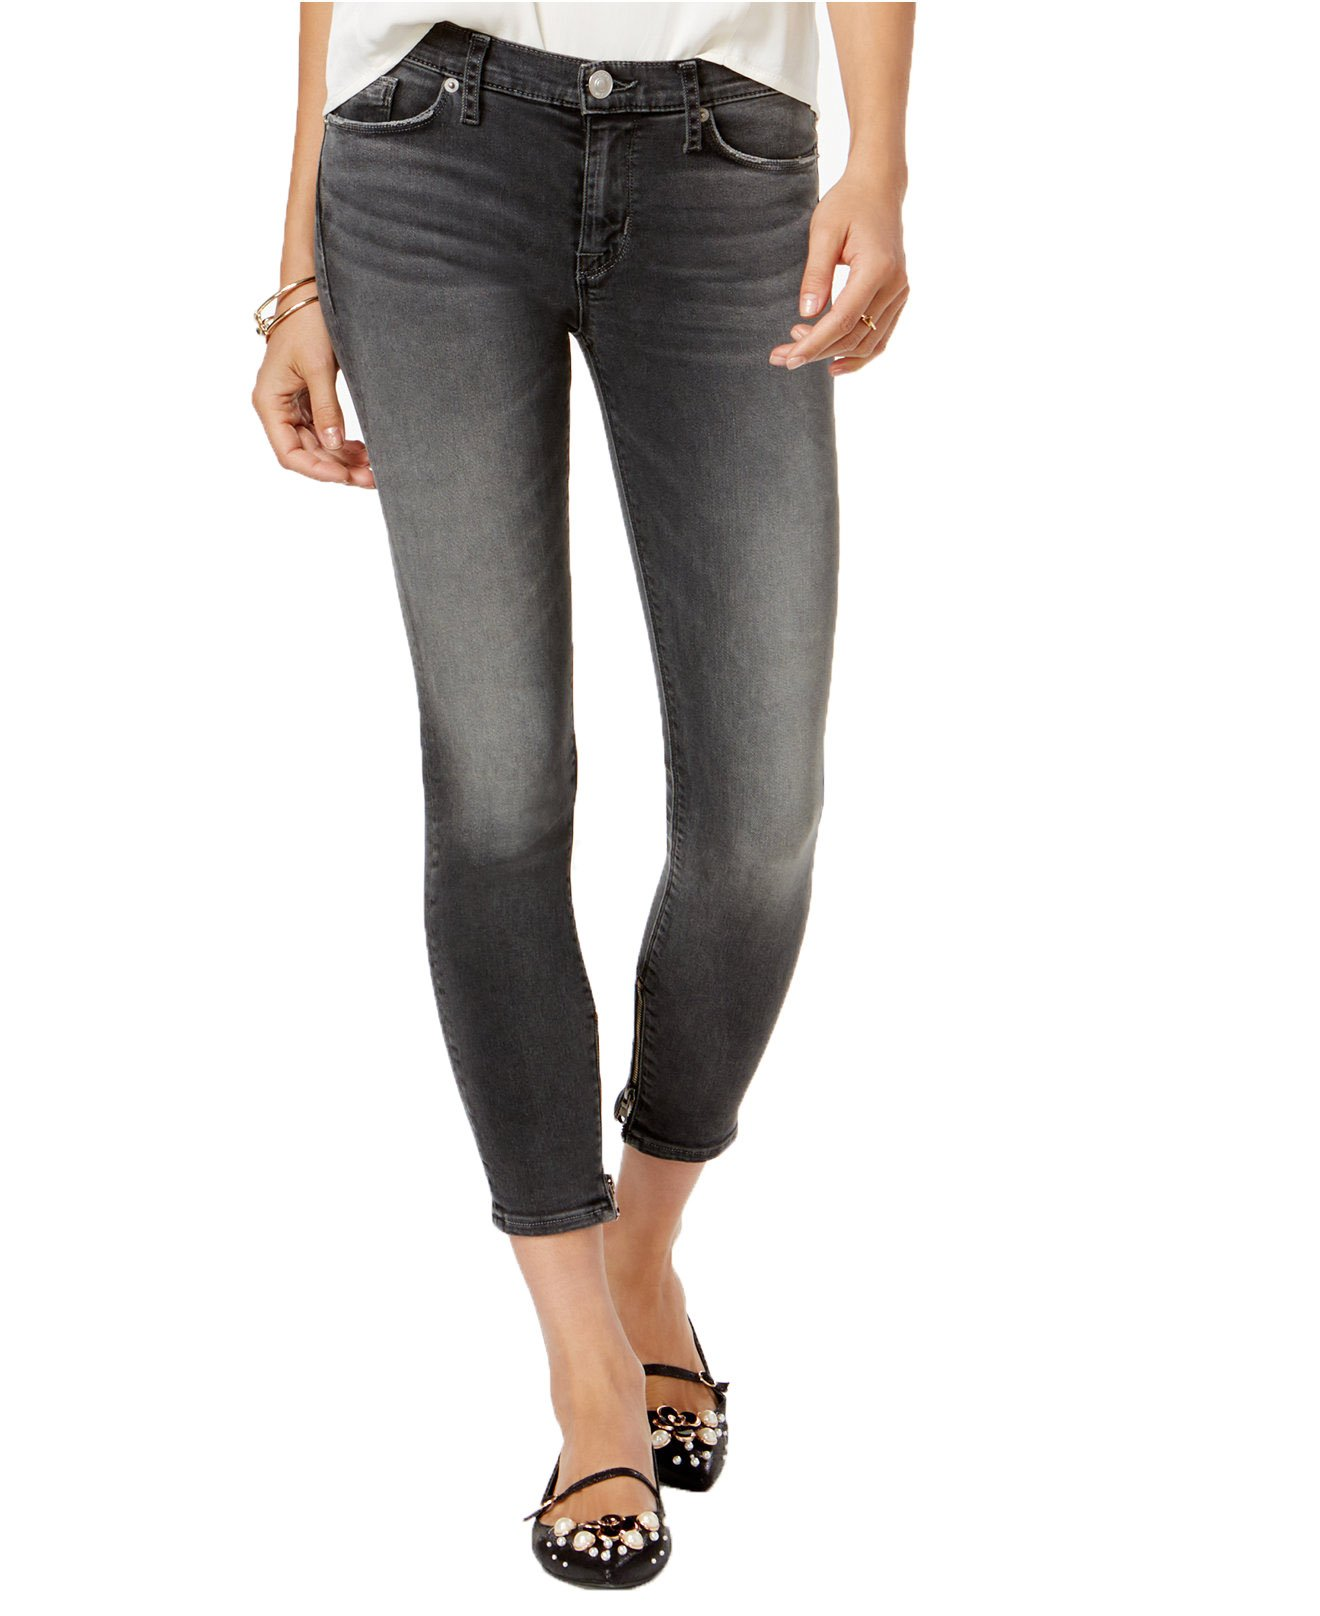 Hudson Jeans Women's Nico Ankle Zip Super Skinny Jeans (32, Trival Wash)